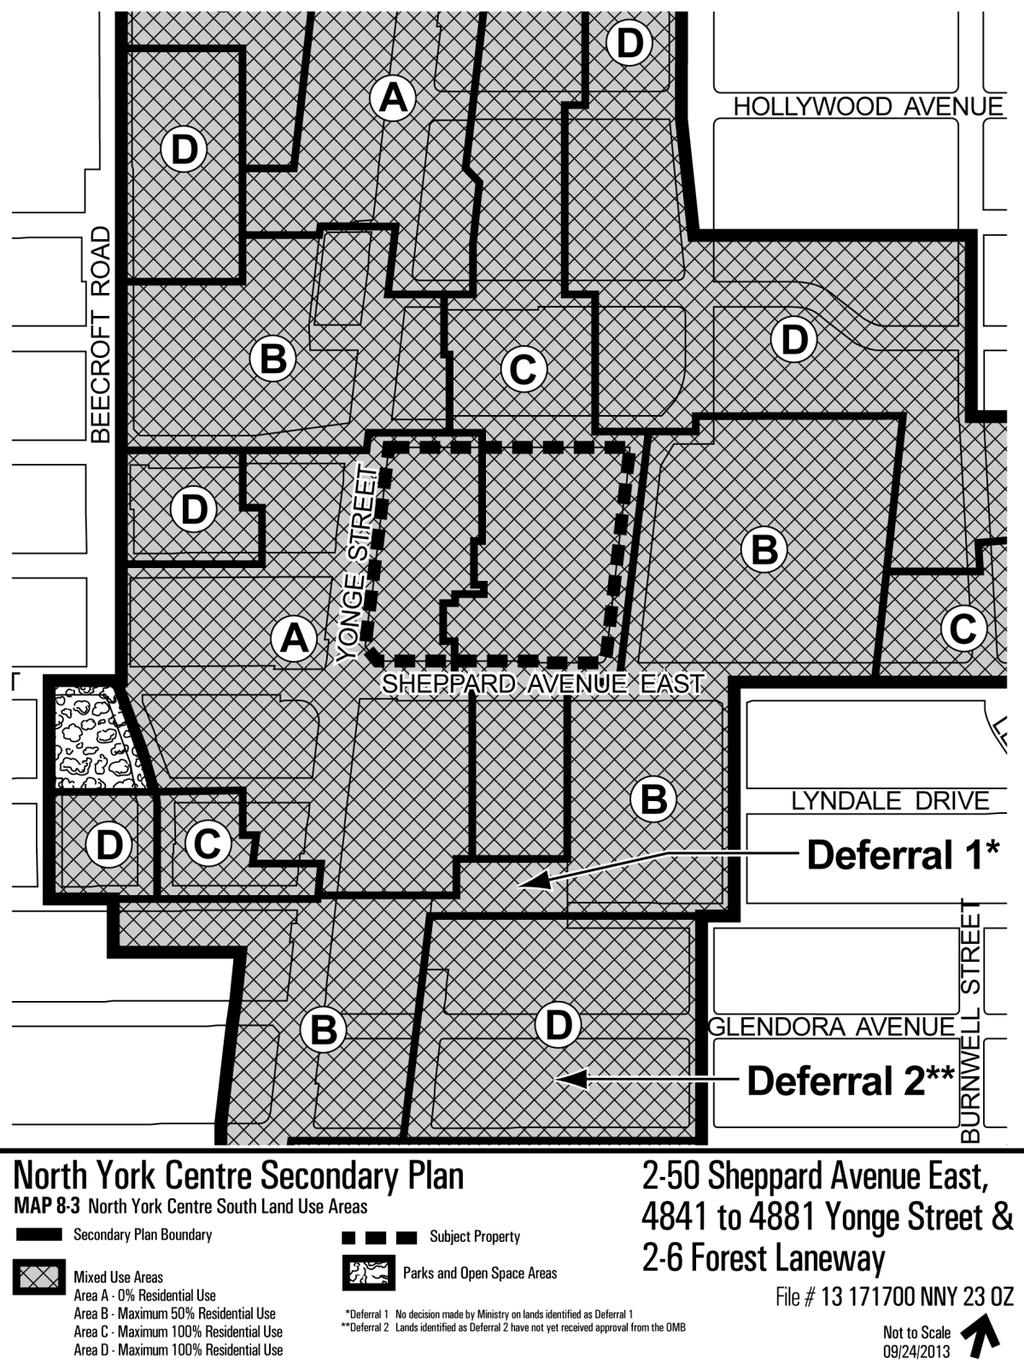 Attachment 5: North York Centre Secondary Plan Land Uses Staff report for